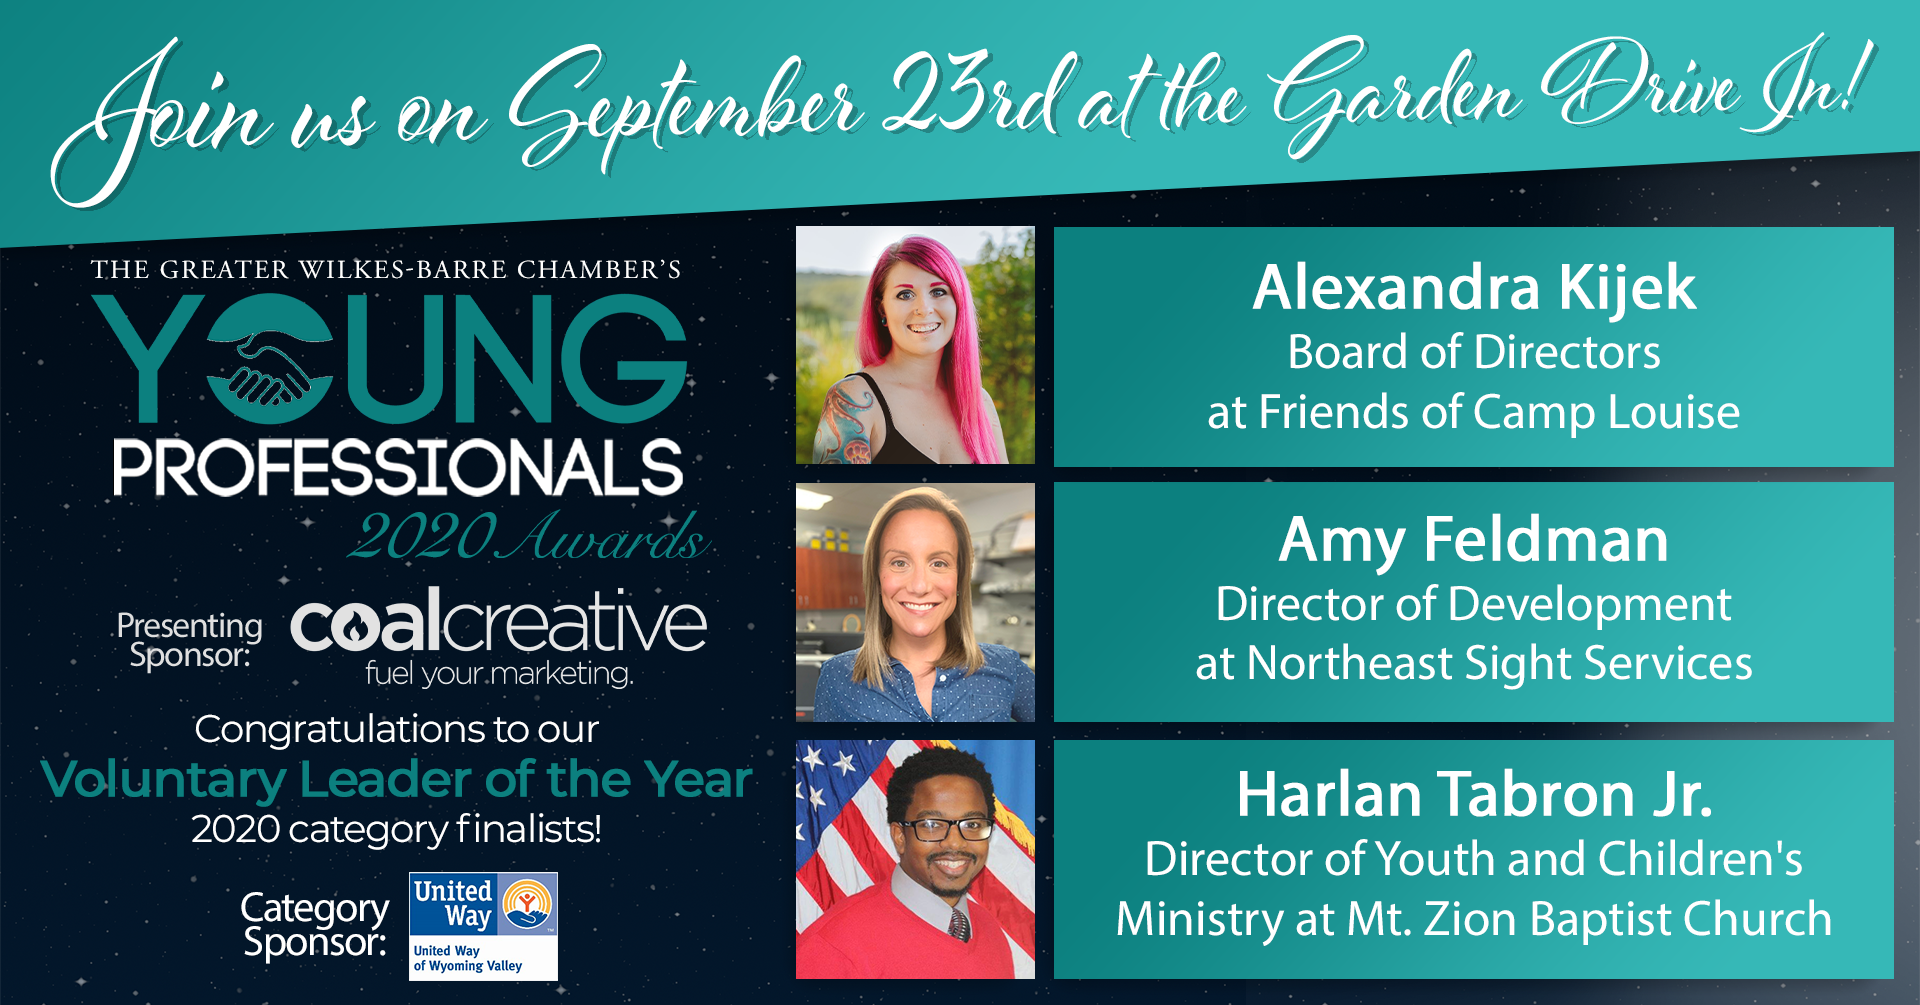 Image for Meet the 2020 Young Professionals Category Finalists for Voluntary Leader of the Year!